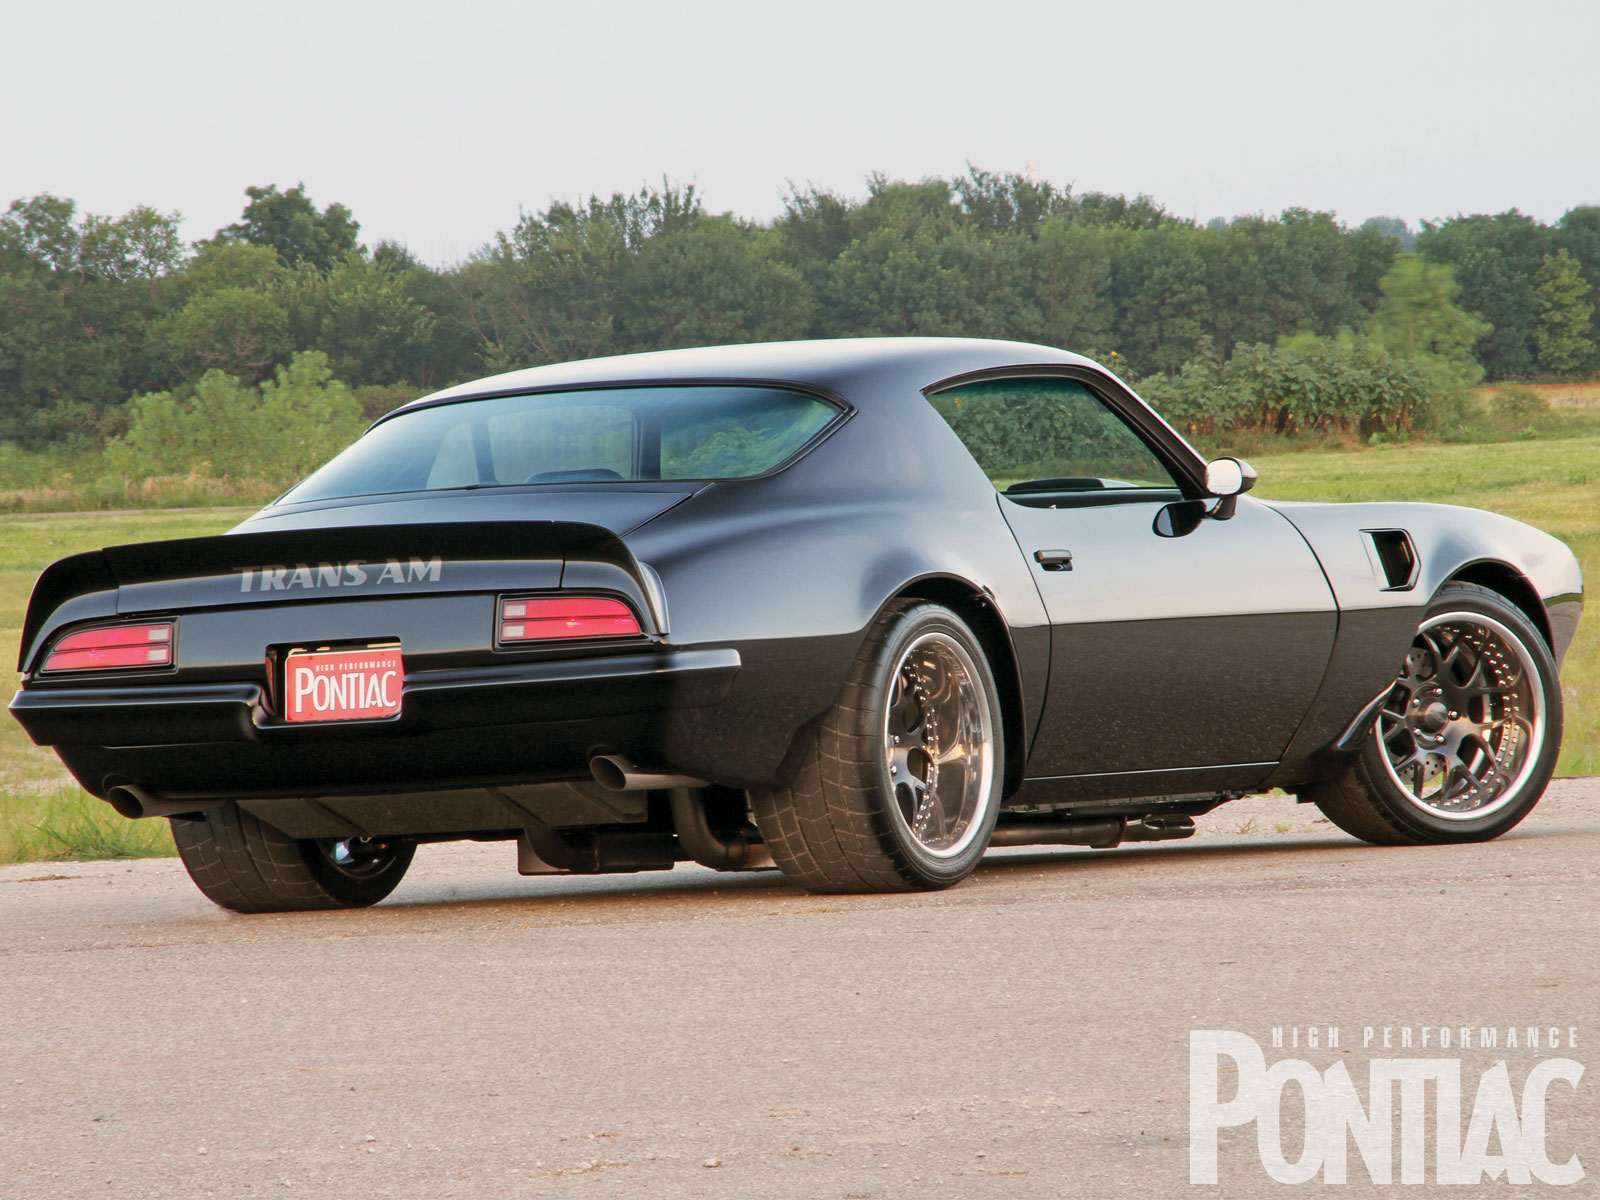 My Perfect Pontiac Trans Am 3dtuning Probably The Best Car 1973 C10 Fuse Box Coupe